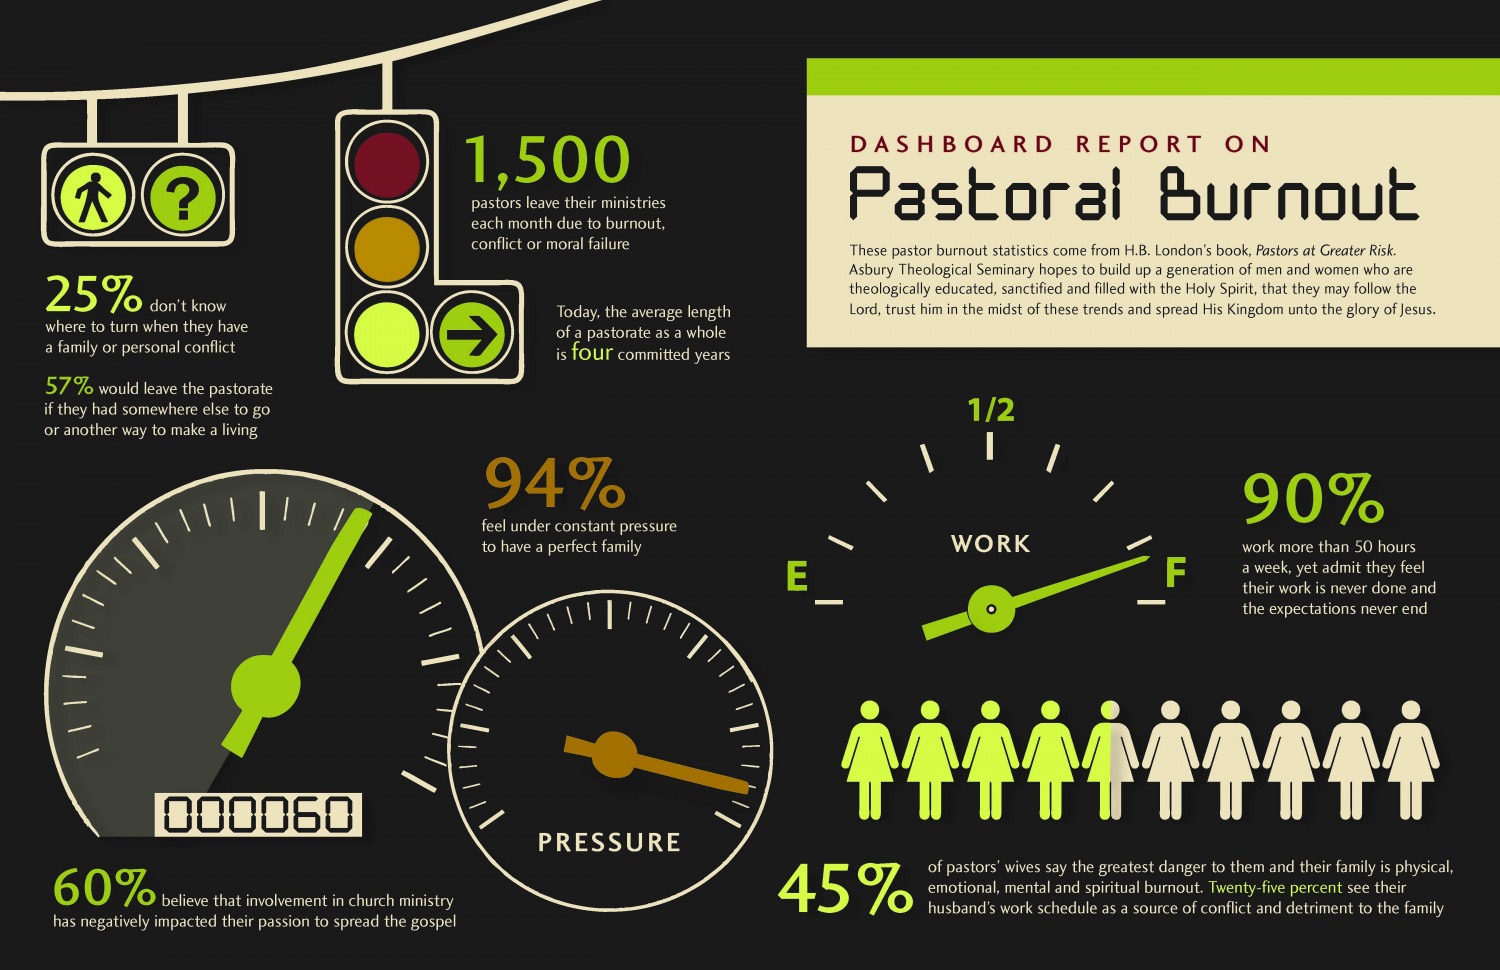 Image result for pastoral burnout statistics infographic